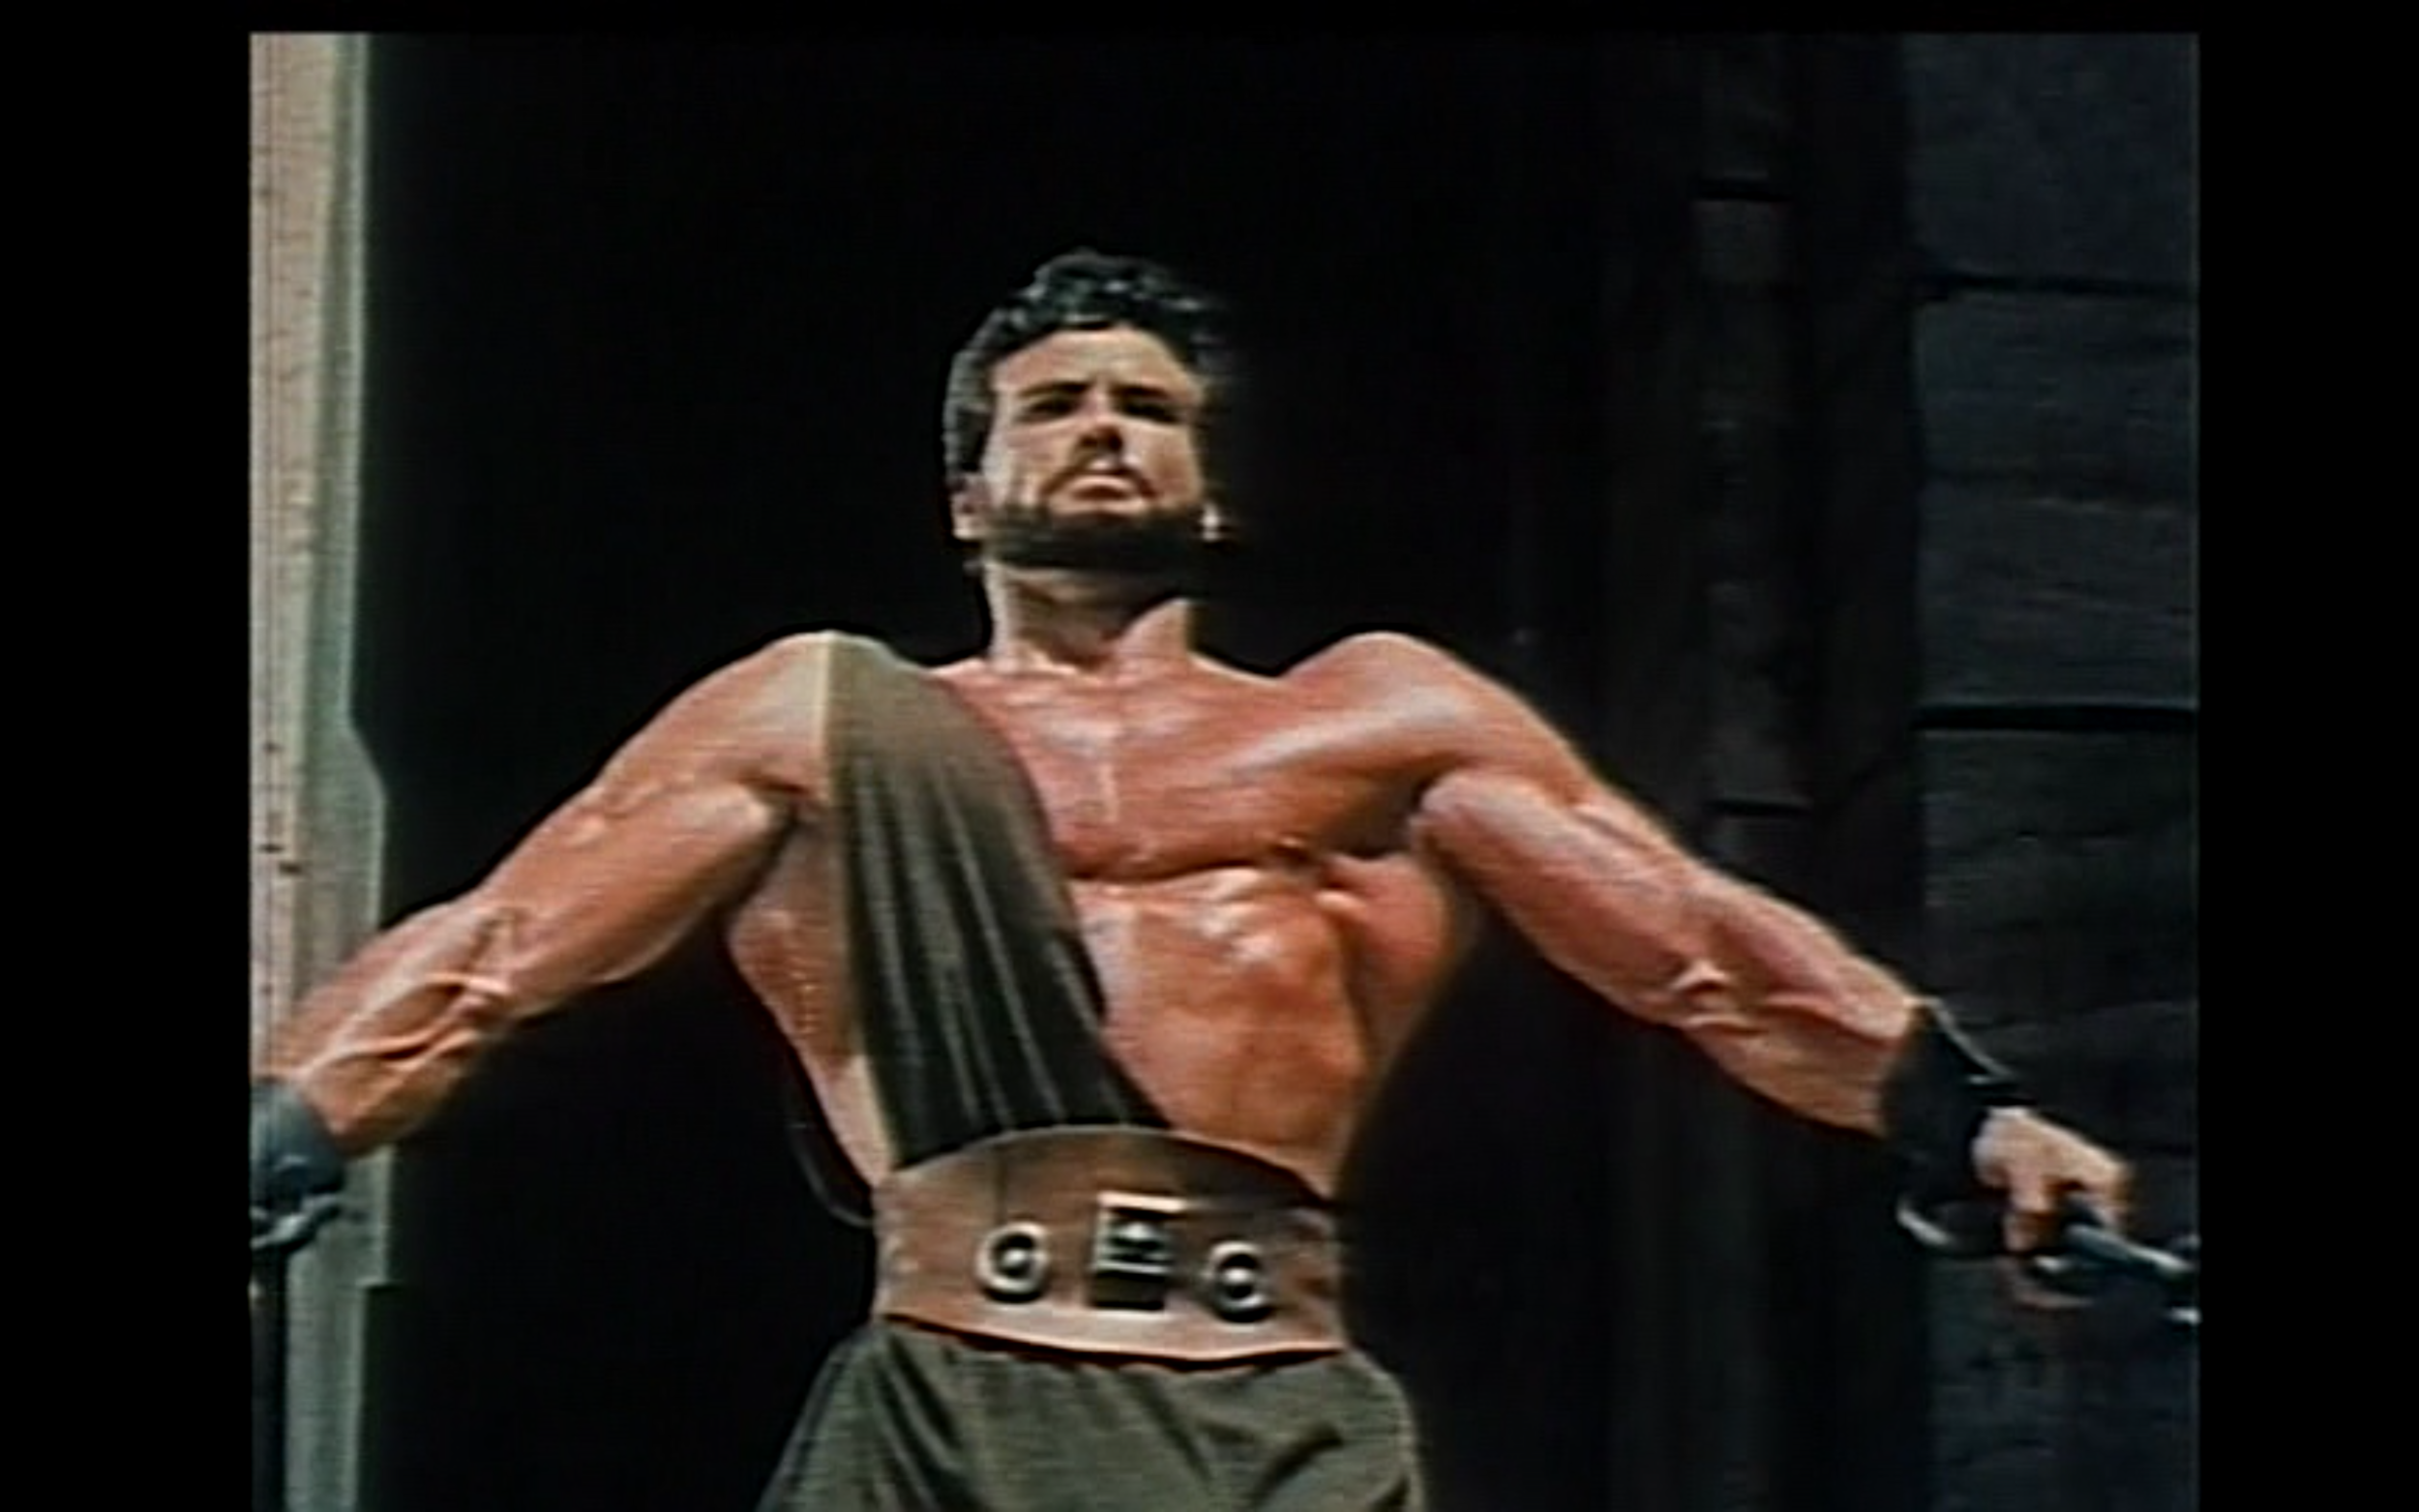 """Figure 4: Hercules (Steve Reeves) pulls down a temple at the conclusion of  Hercules  (Francisci 1958). The look of Reeves' character (minus the """"H"""" symbol on his weight-lifting belt) probably inspired the look of Marvel's Herc. Image credit: screen capture (Embassy Pictures/Galatea Film)."""